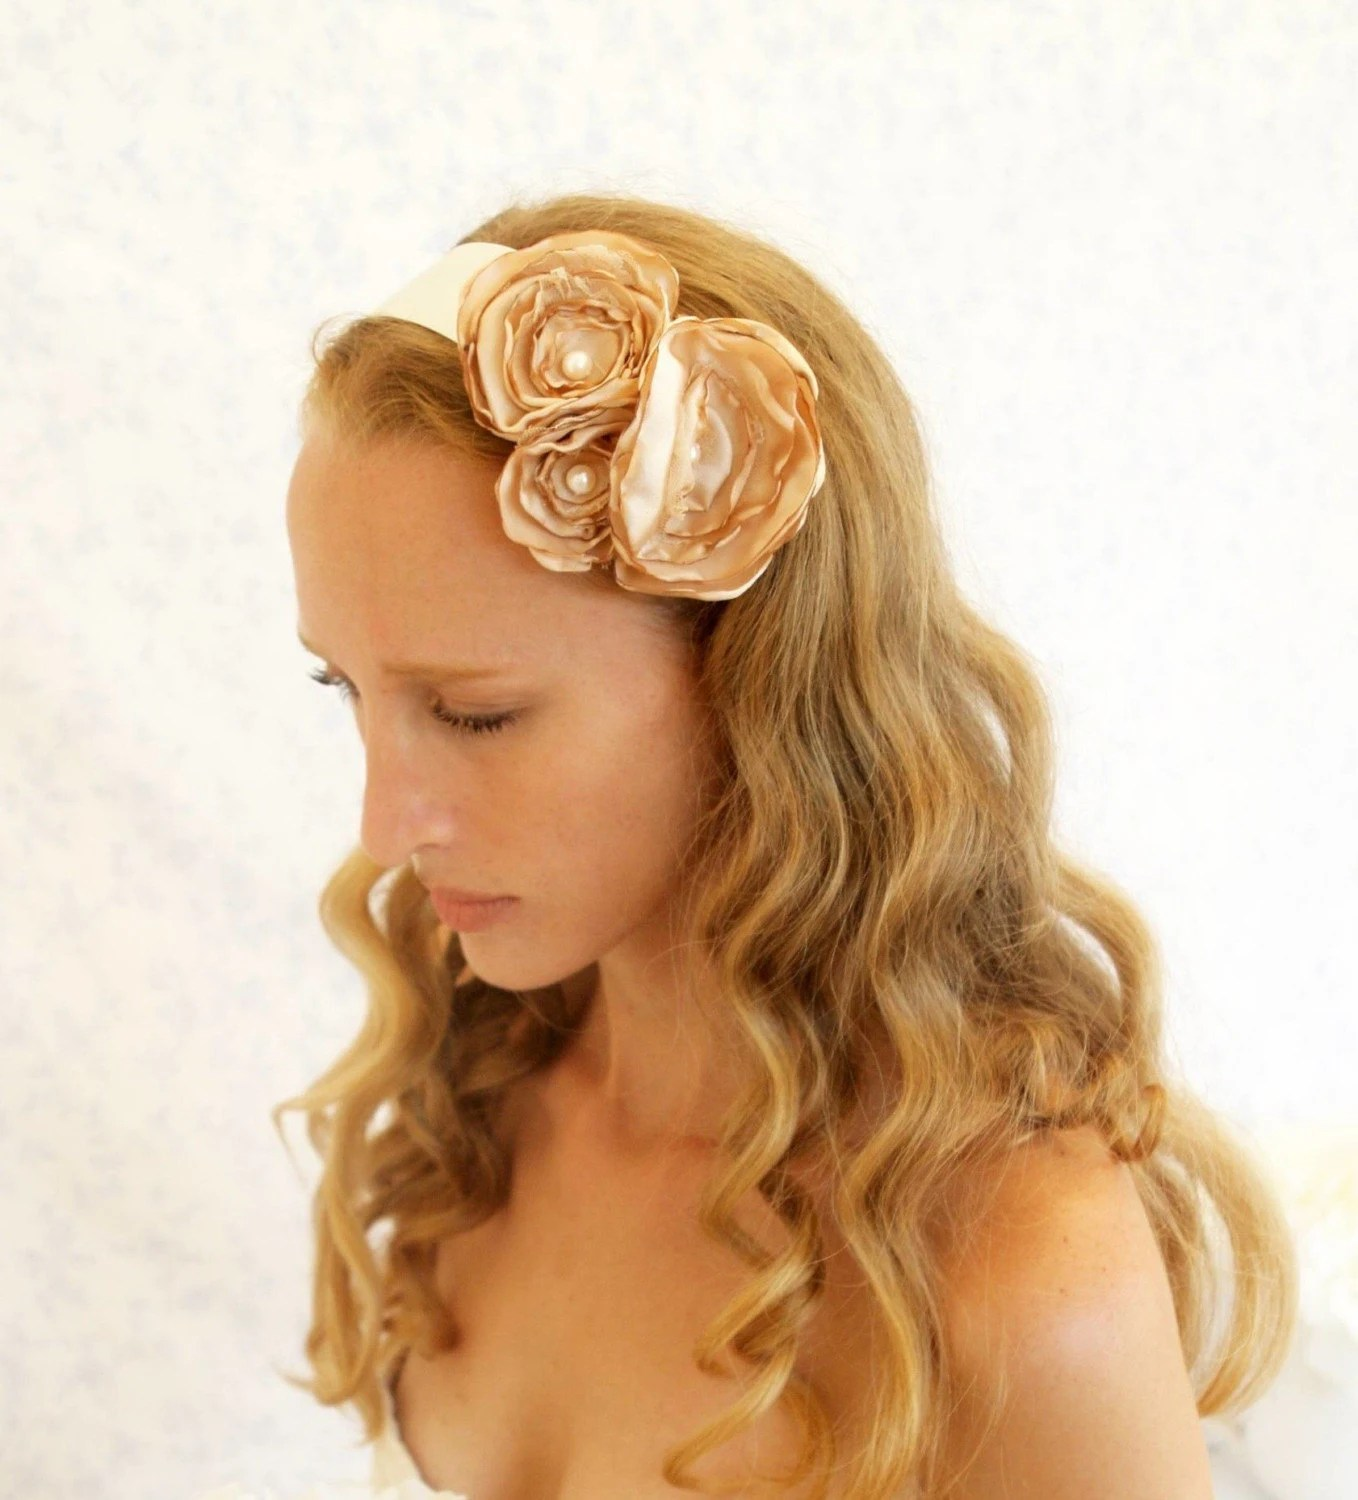 English Garden sash or headband - a Versatile Piece